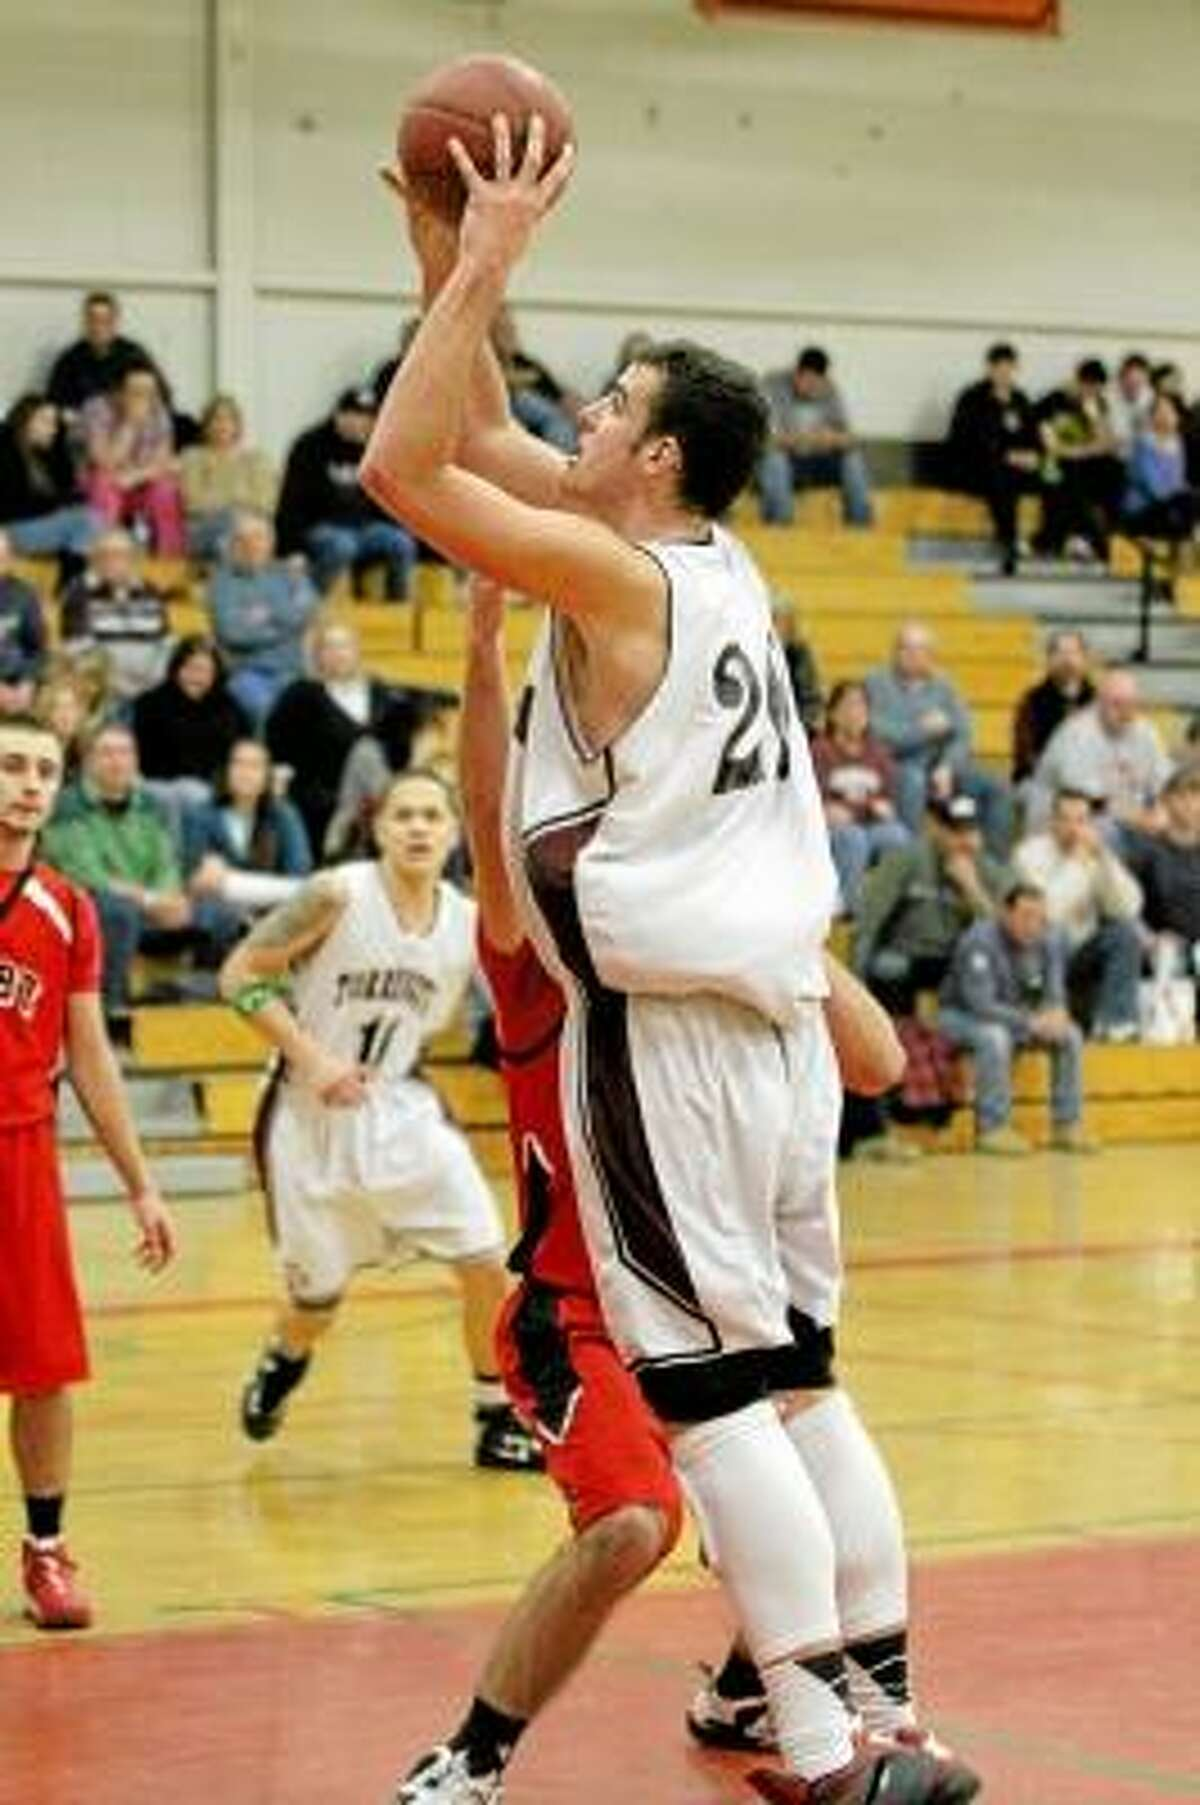 Torrington center Dave Canny takes a shot against Derby. Photo by Marianne Killackey/Special to Register Citzen